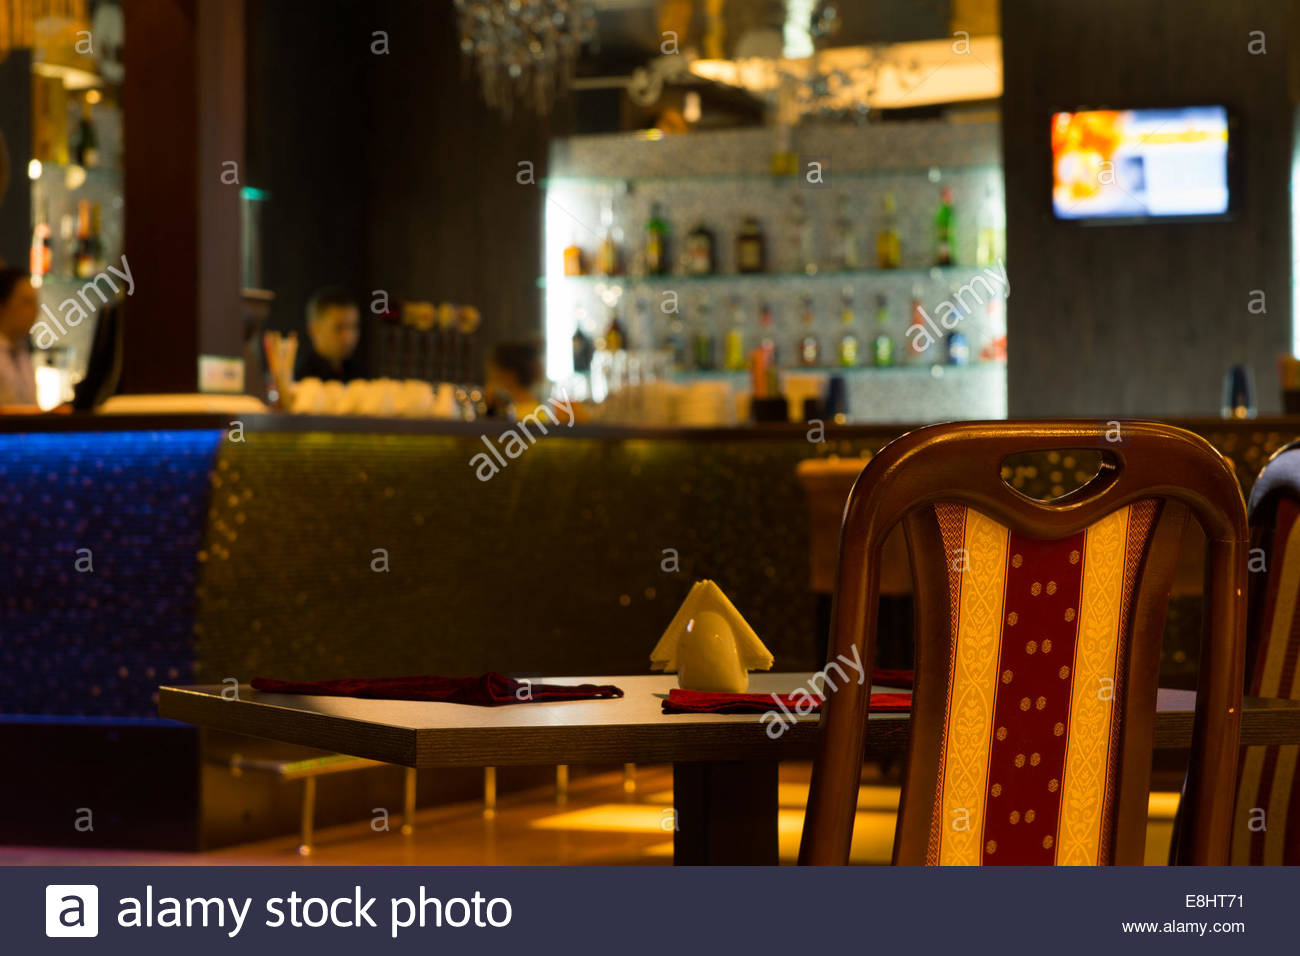 Empty Table in Barroom with Blurred Background Stock Photo 1300x956